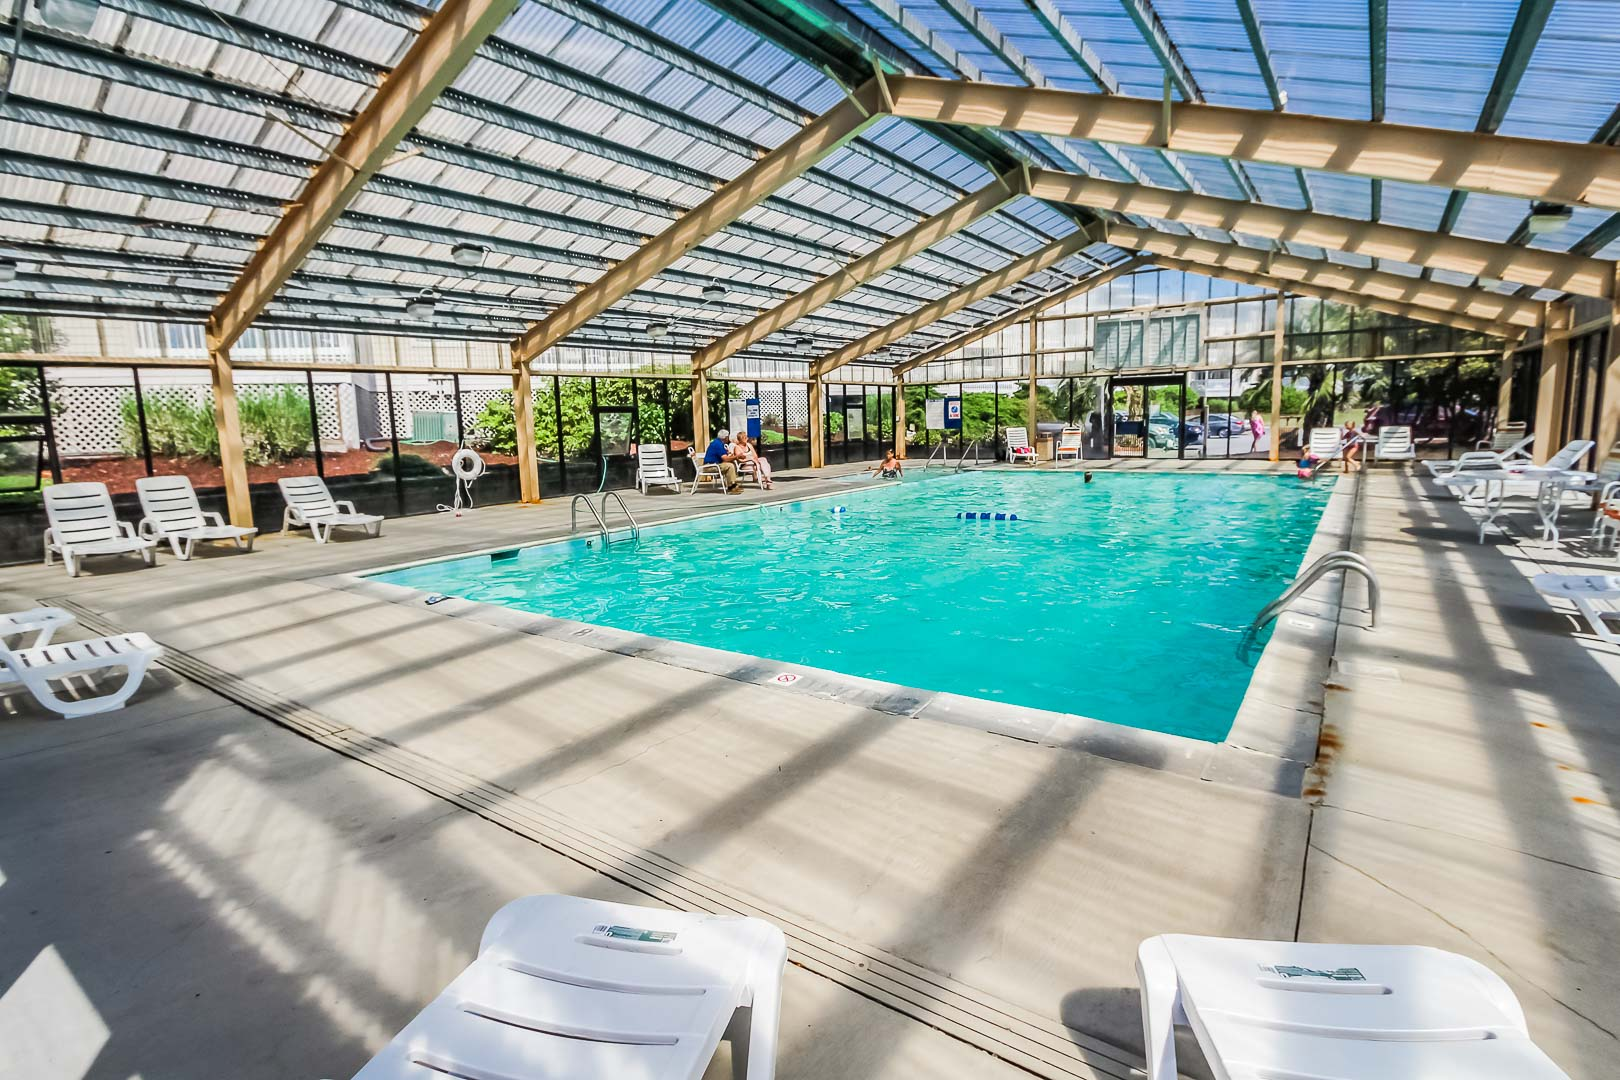 A quaint indoor pool at VRI's A Place at the Beach III in North Carolina